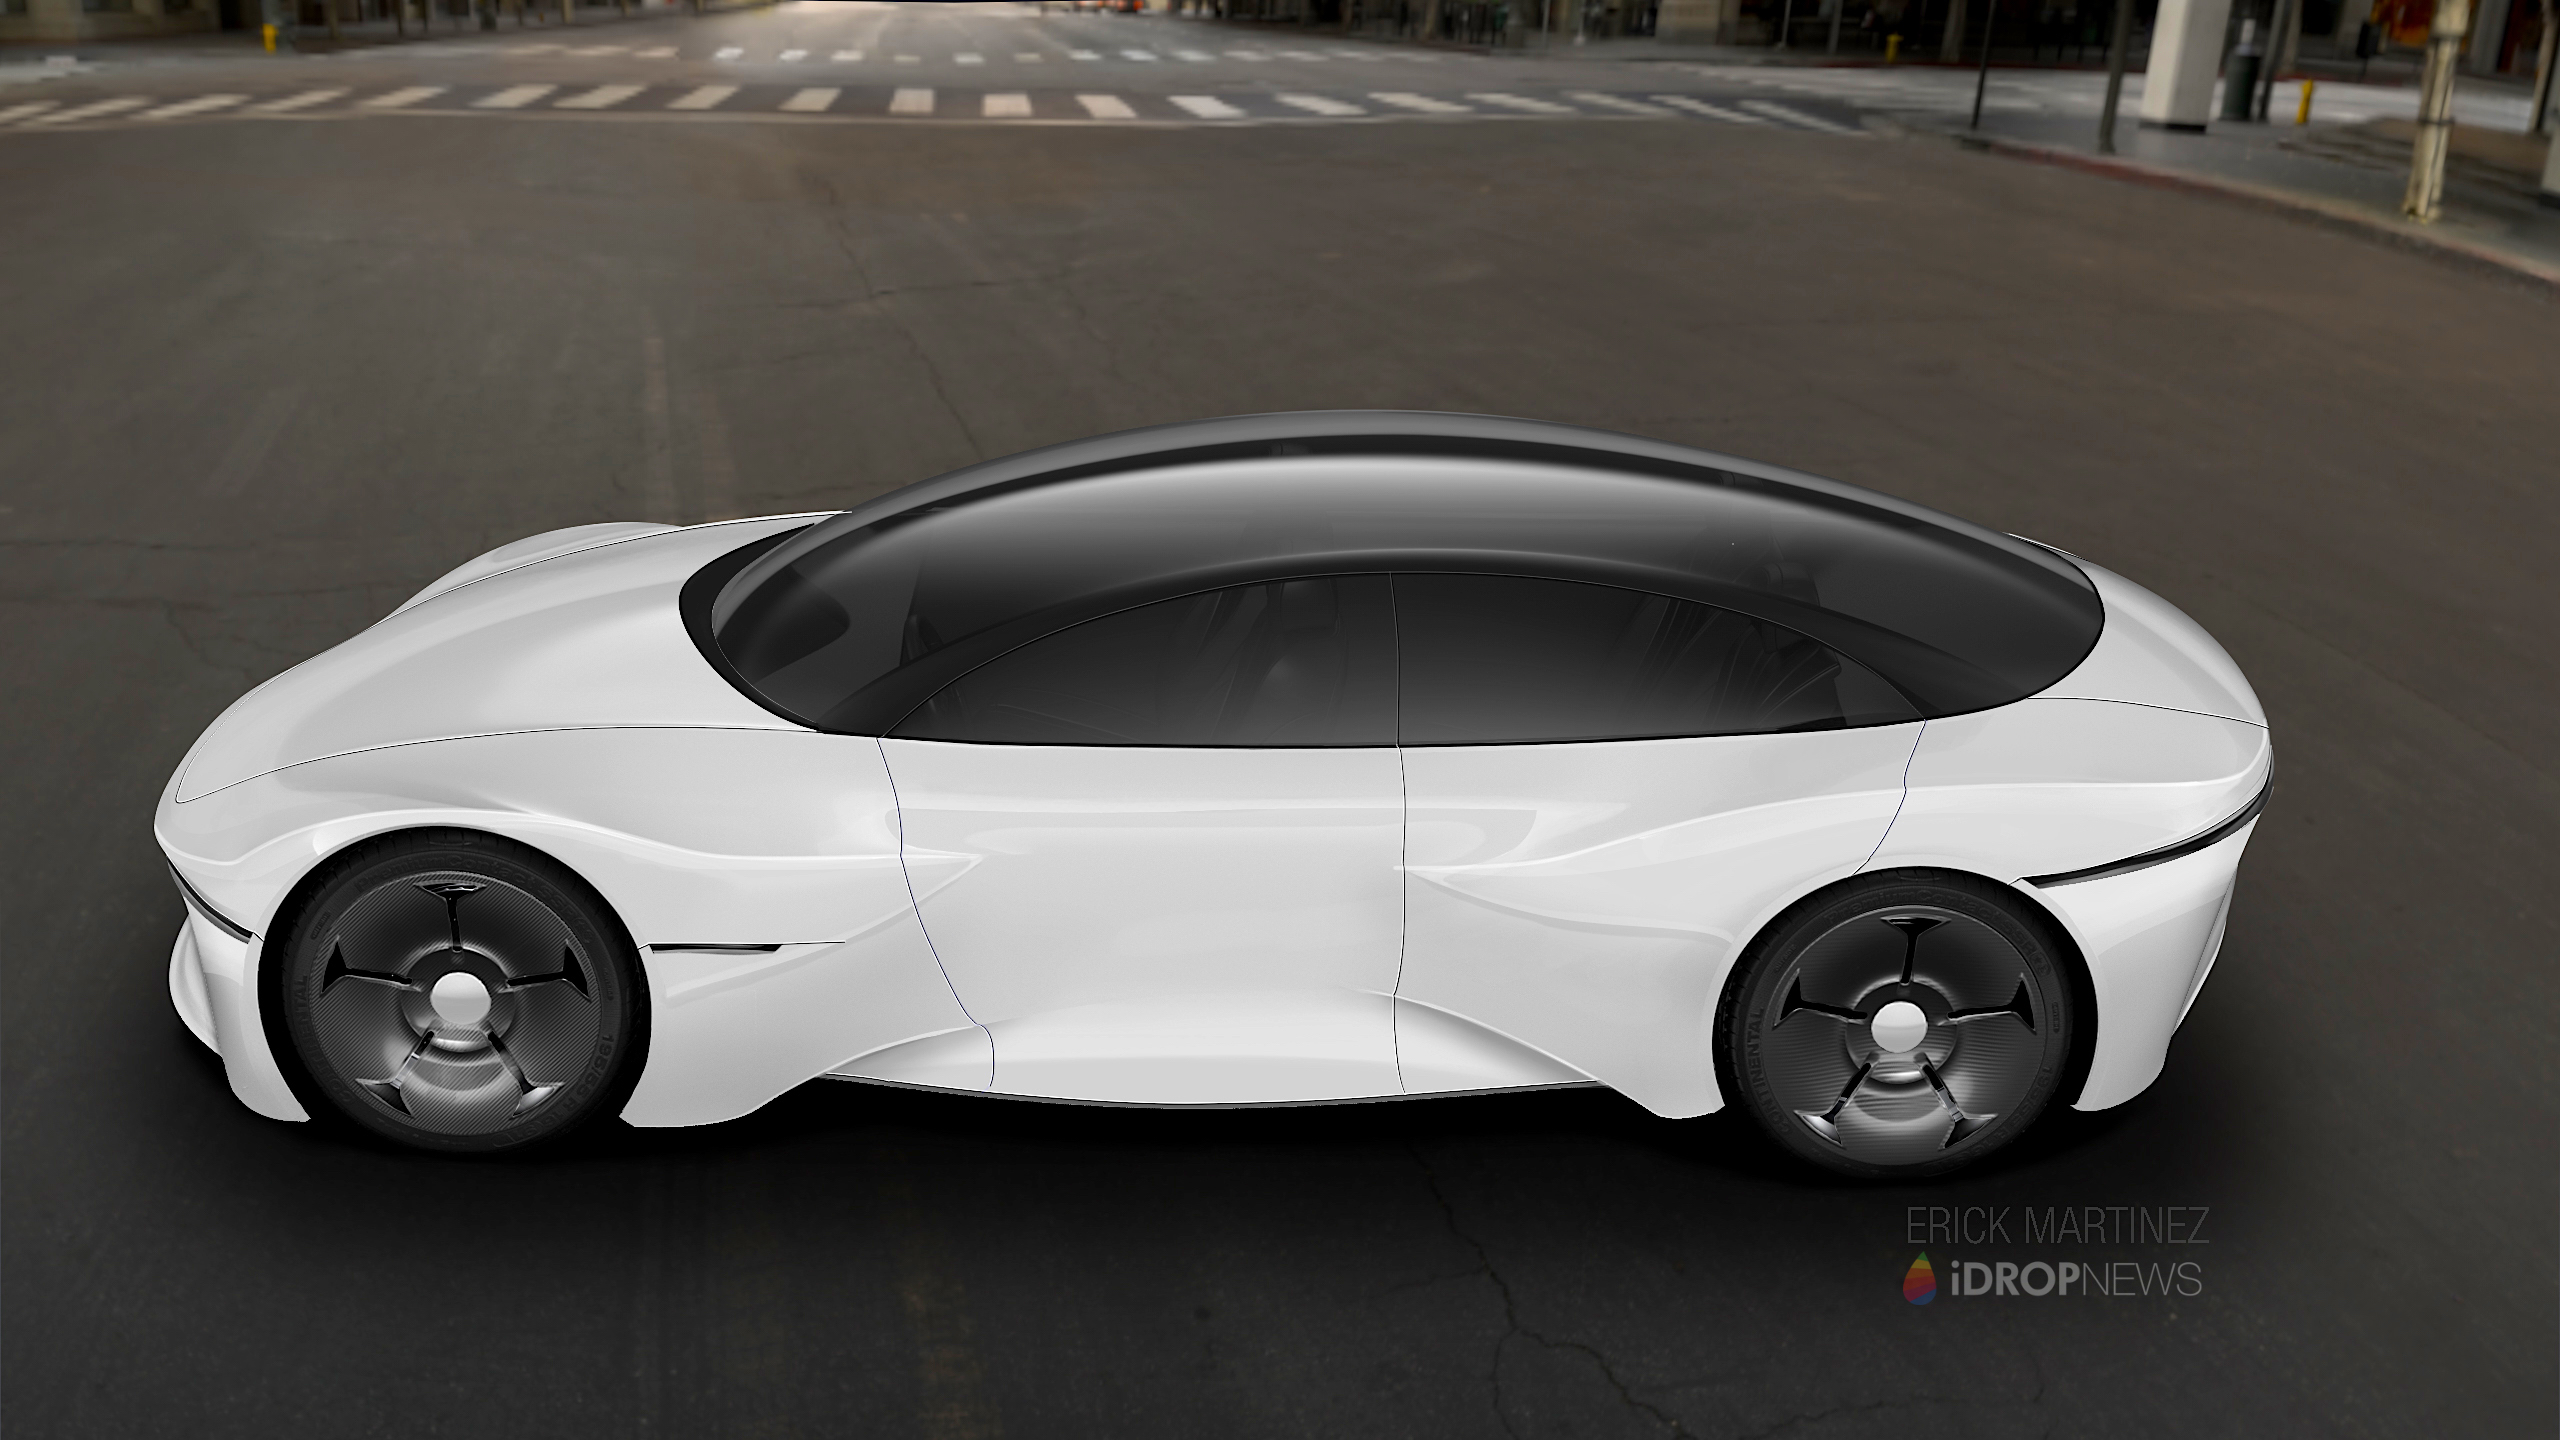 Apple Car Concept Renders iDrop News 4